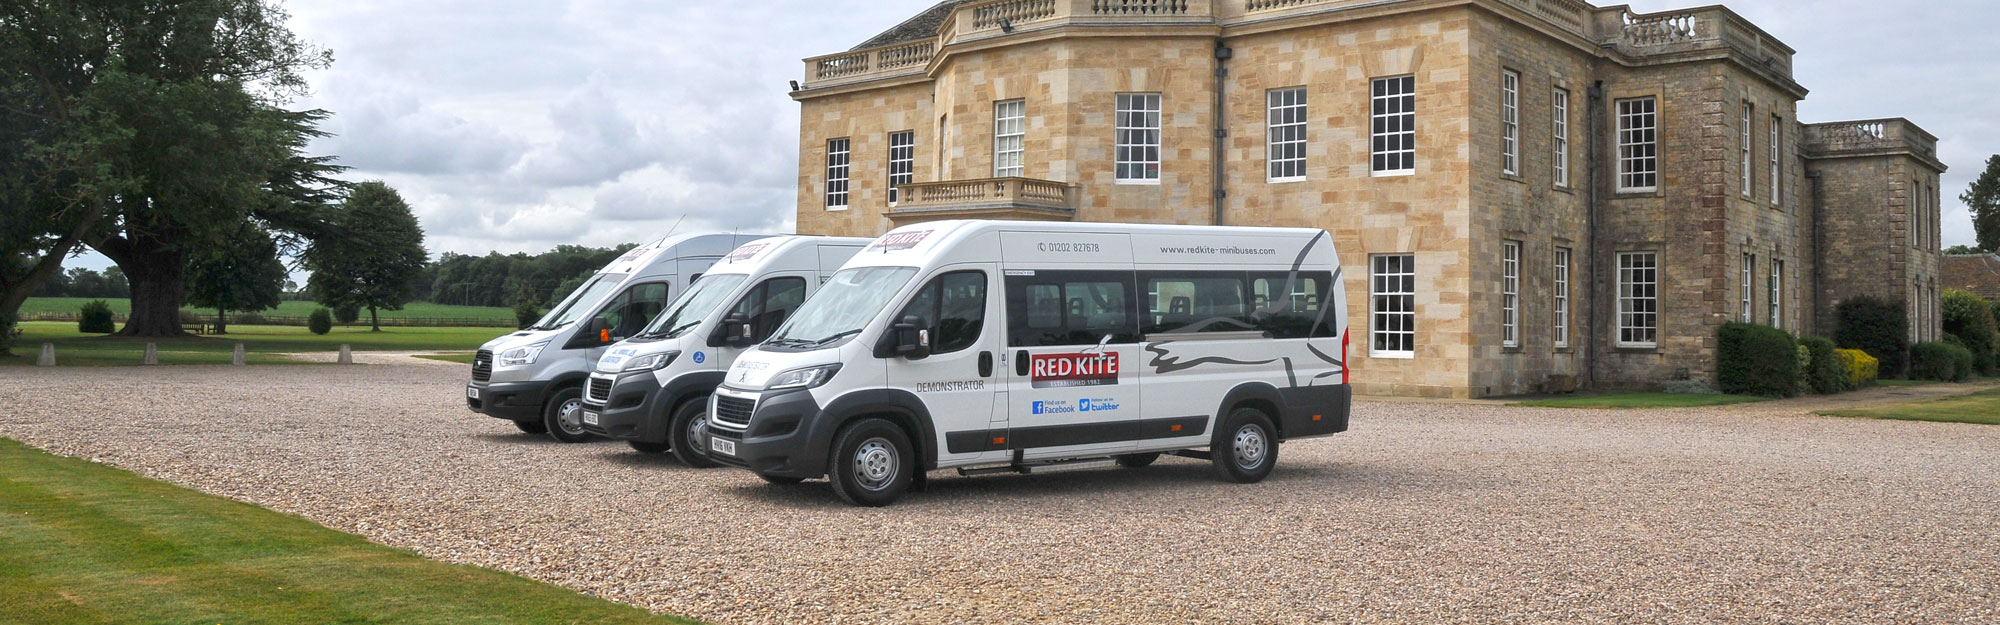 Red Kite Peugeot Ford and Accessible Demonstrator Minibuses